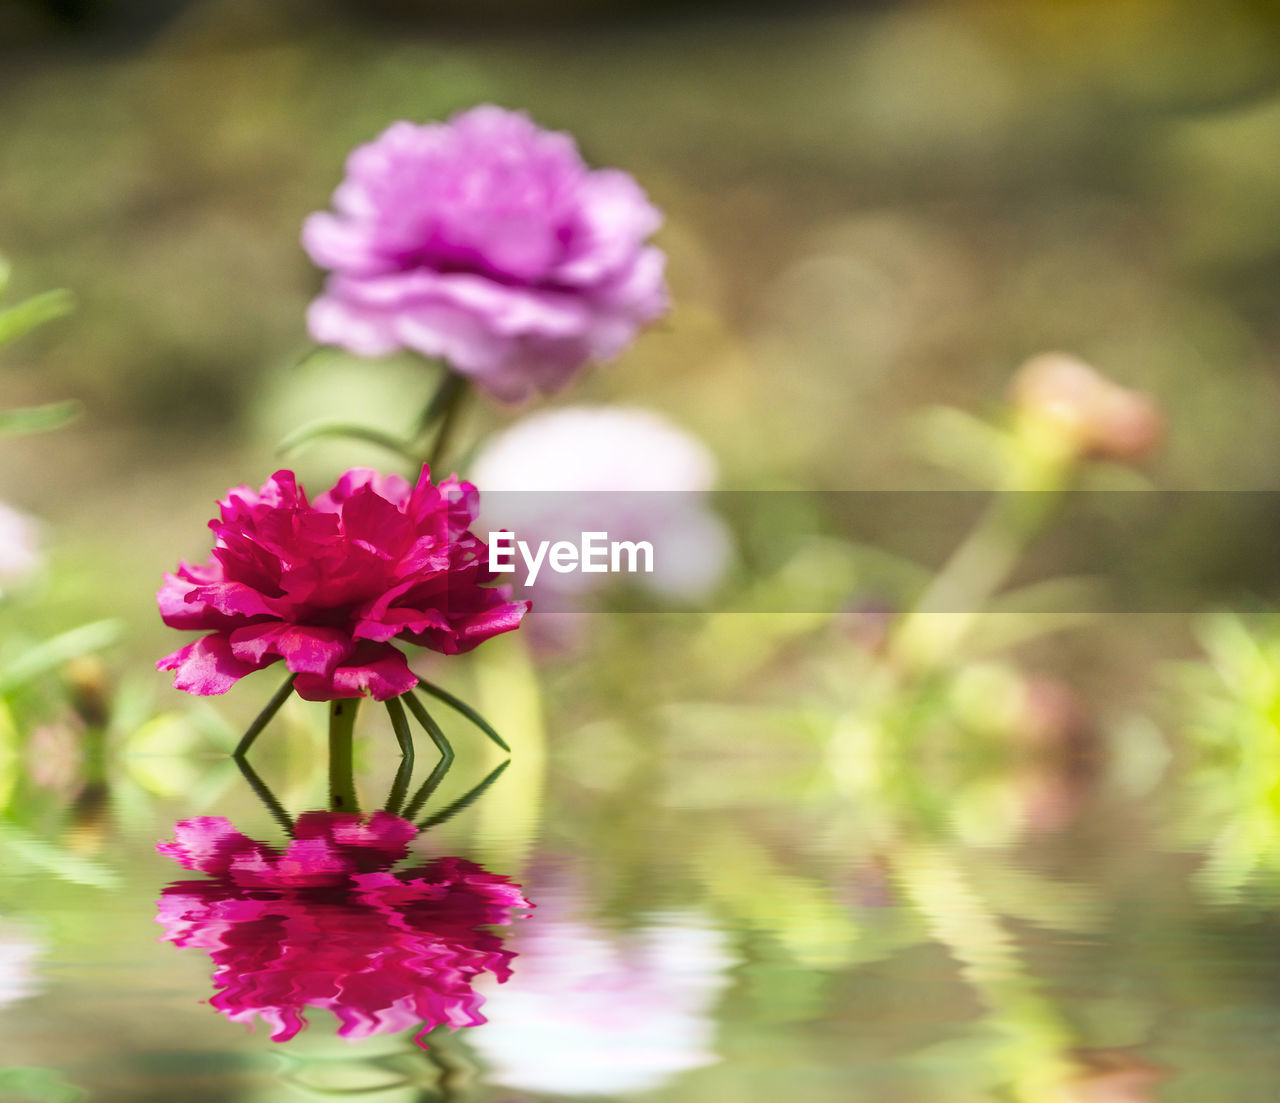 flower, fragility, petal, beauty in nature, nature, freshness, flower head, growth, plant, pink color, no people, focus on foreground, day, blooming, outdoors, close-up